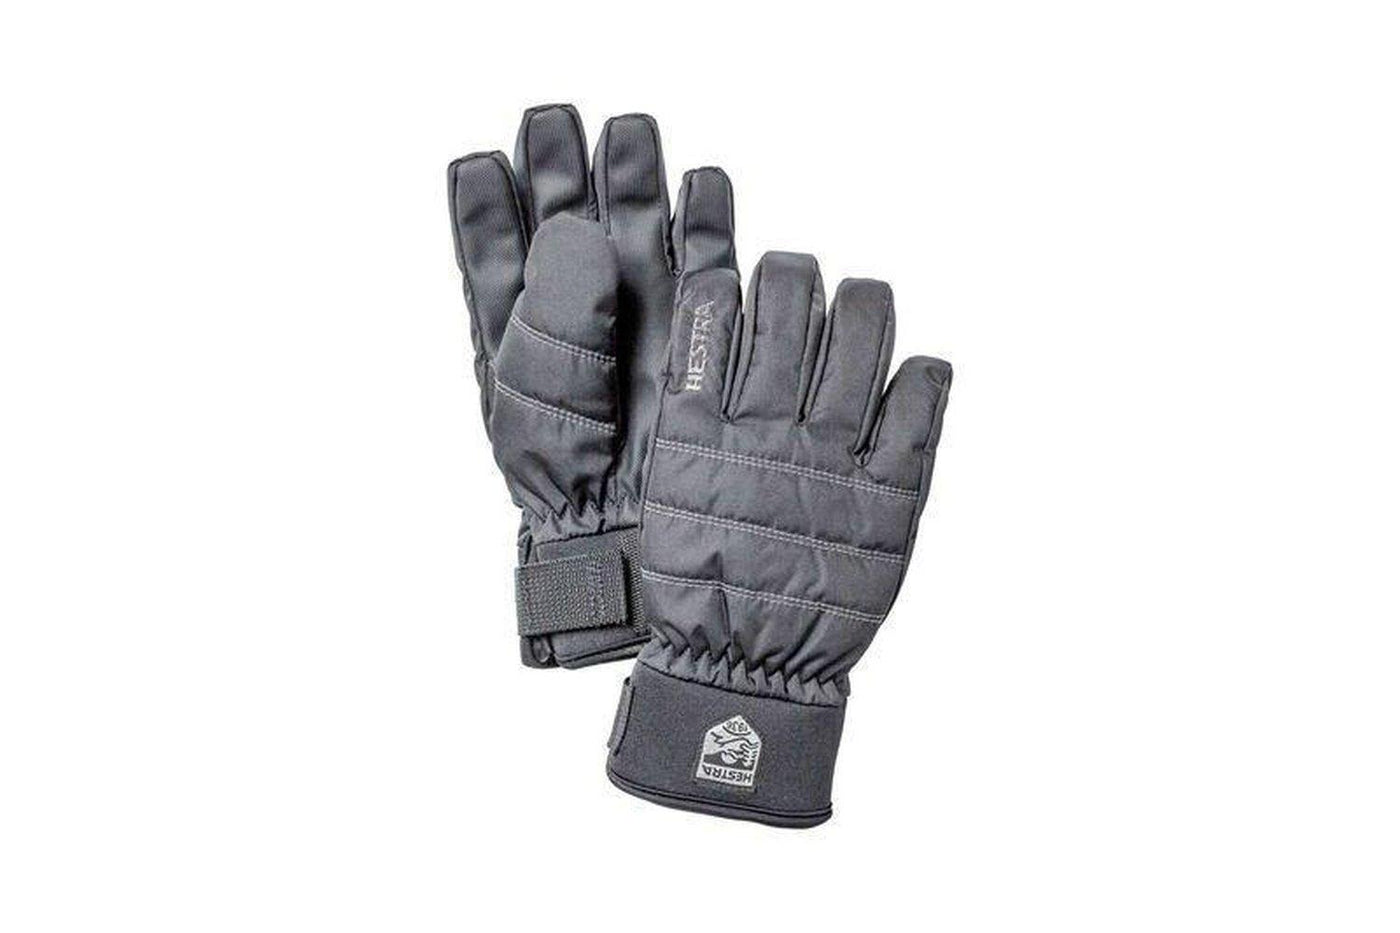 Junior Czone Primaloft Glove Gloves Hestra Black 5